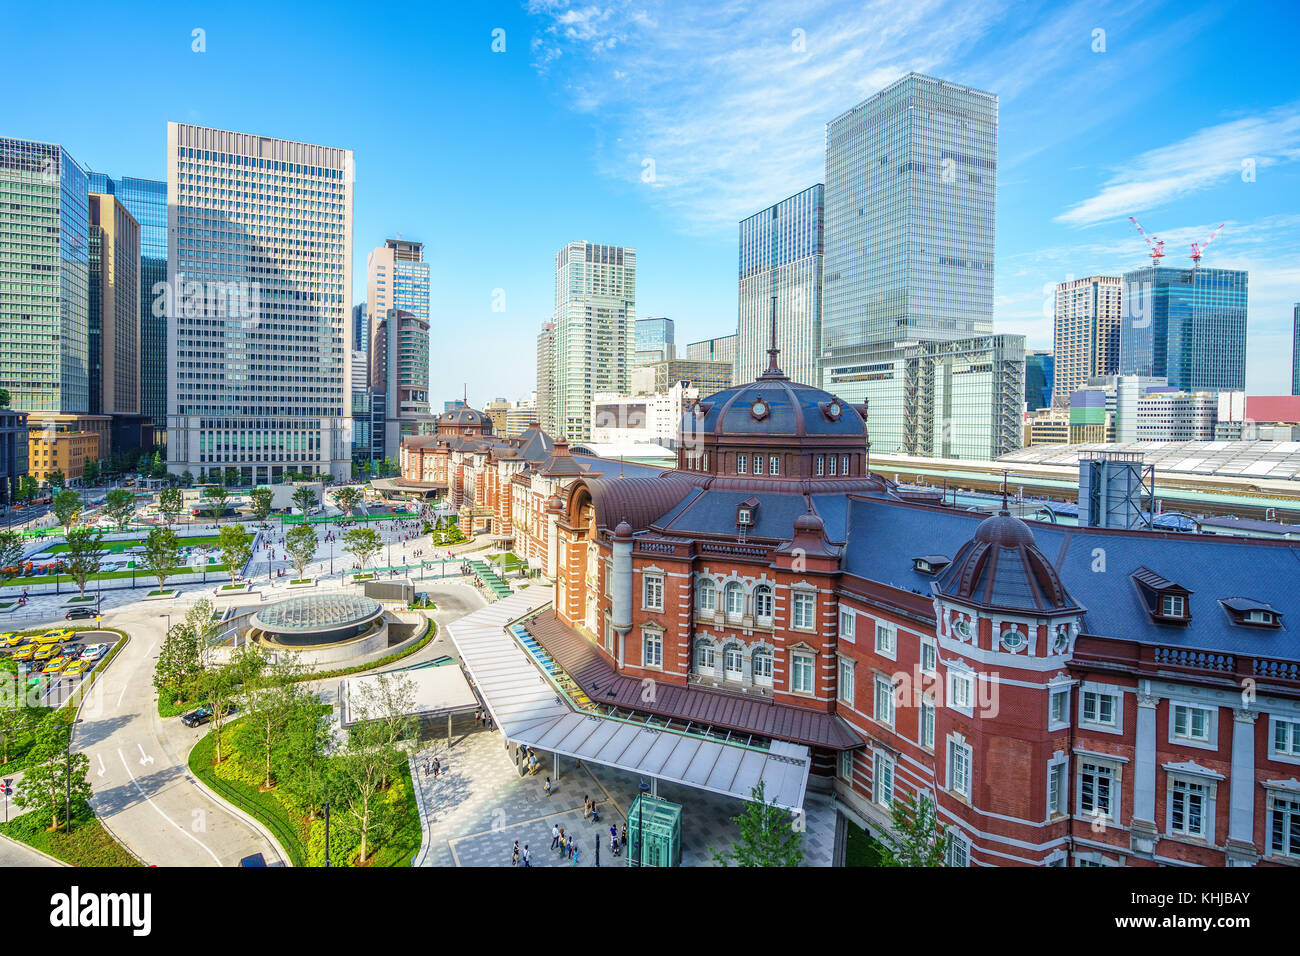 Tokyo station, a railway station in the Marunouchi business district of Chiyoda - Stock Image